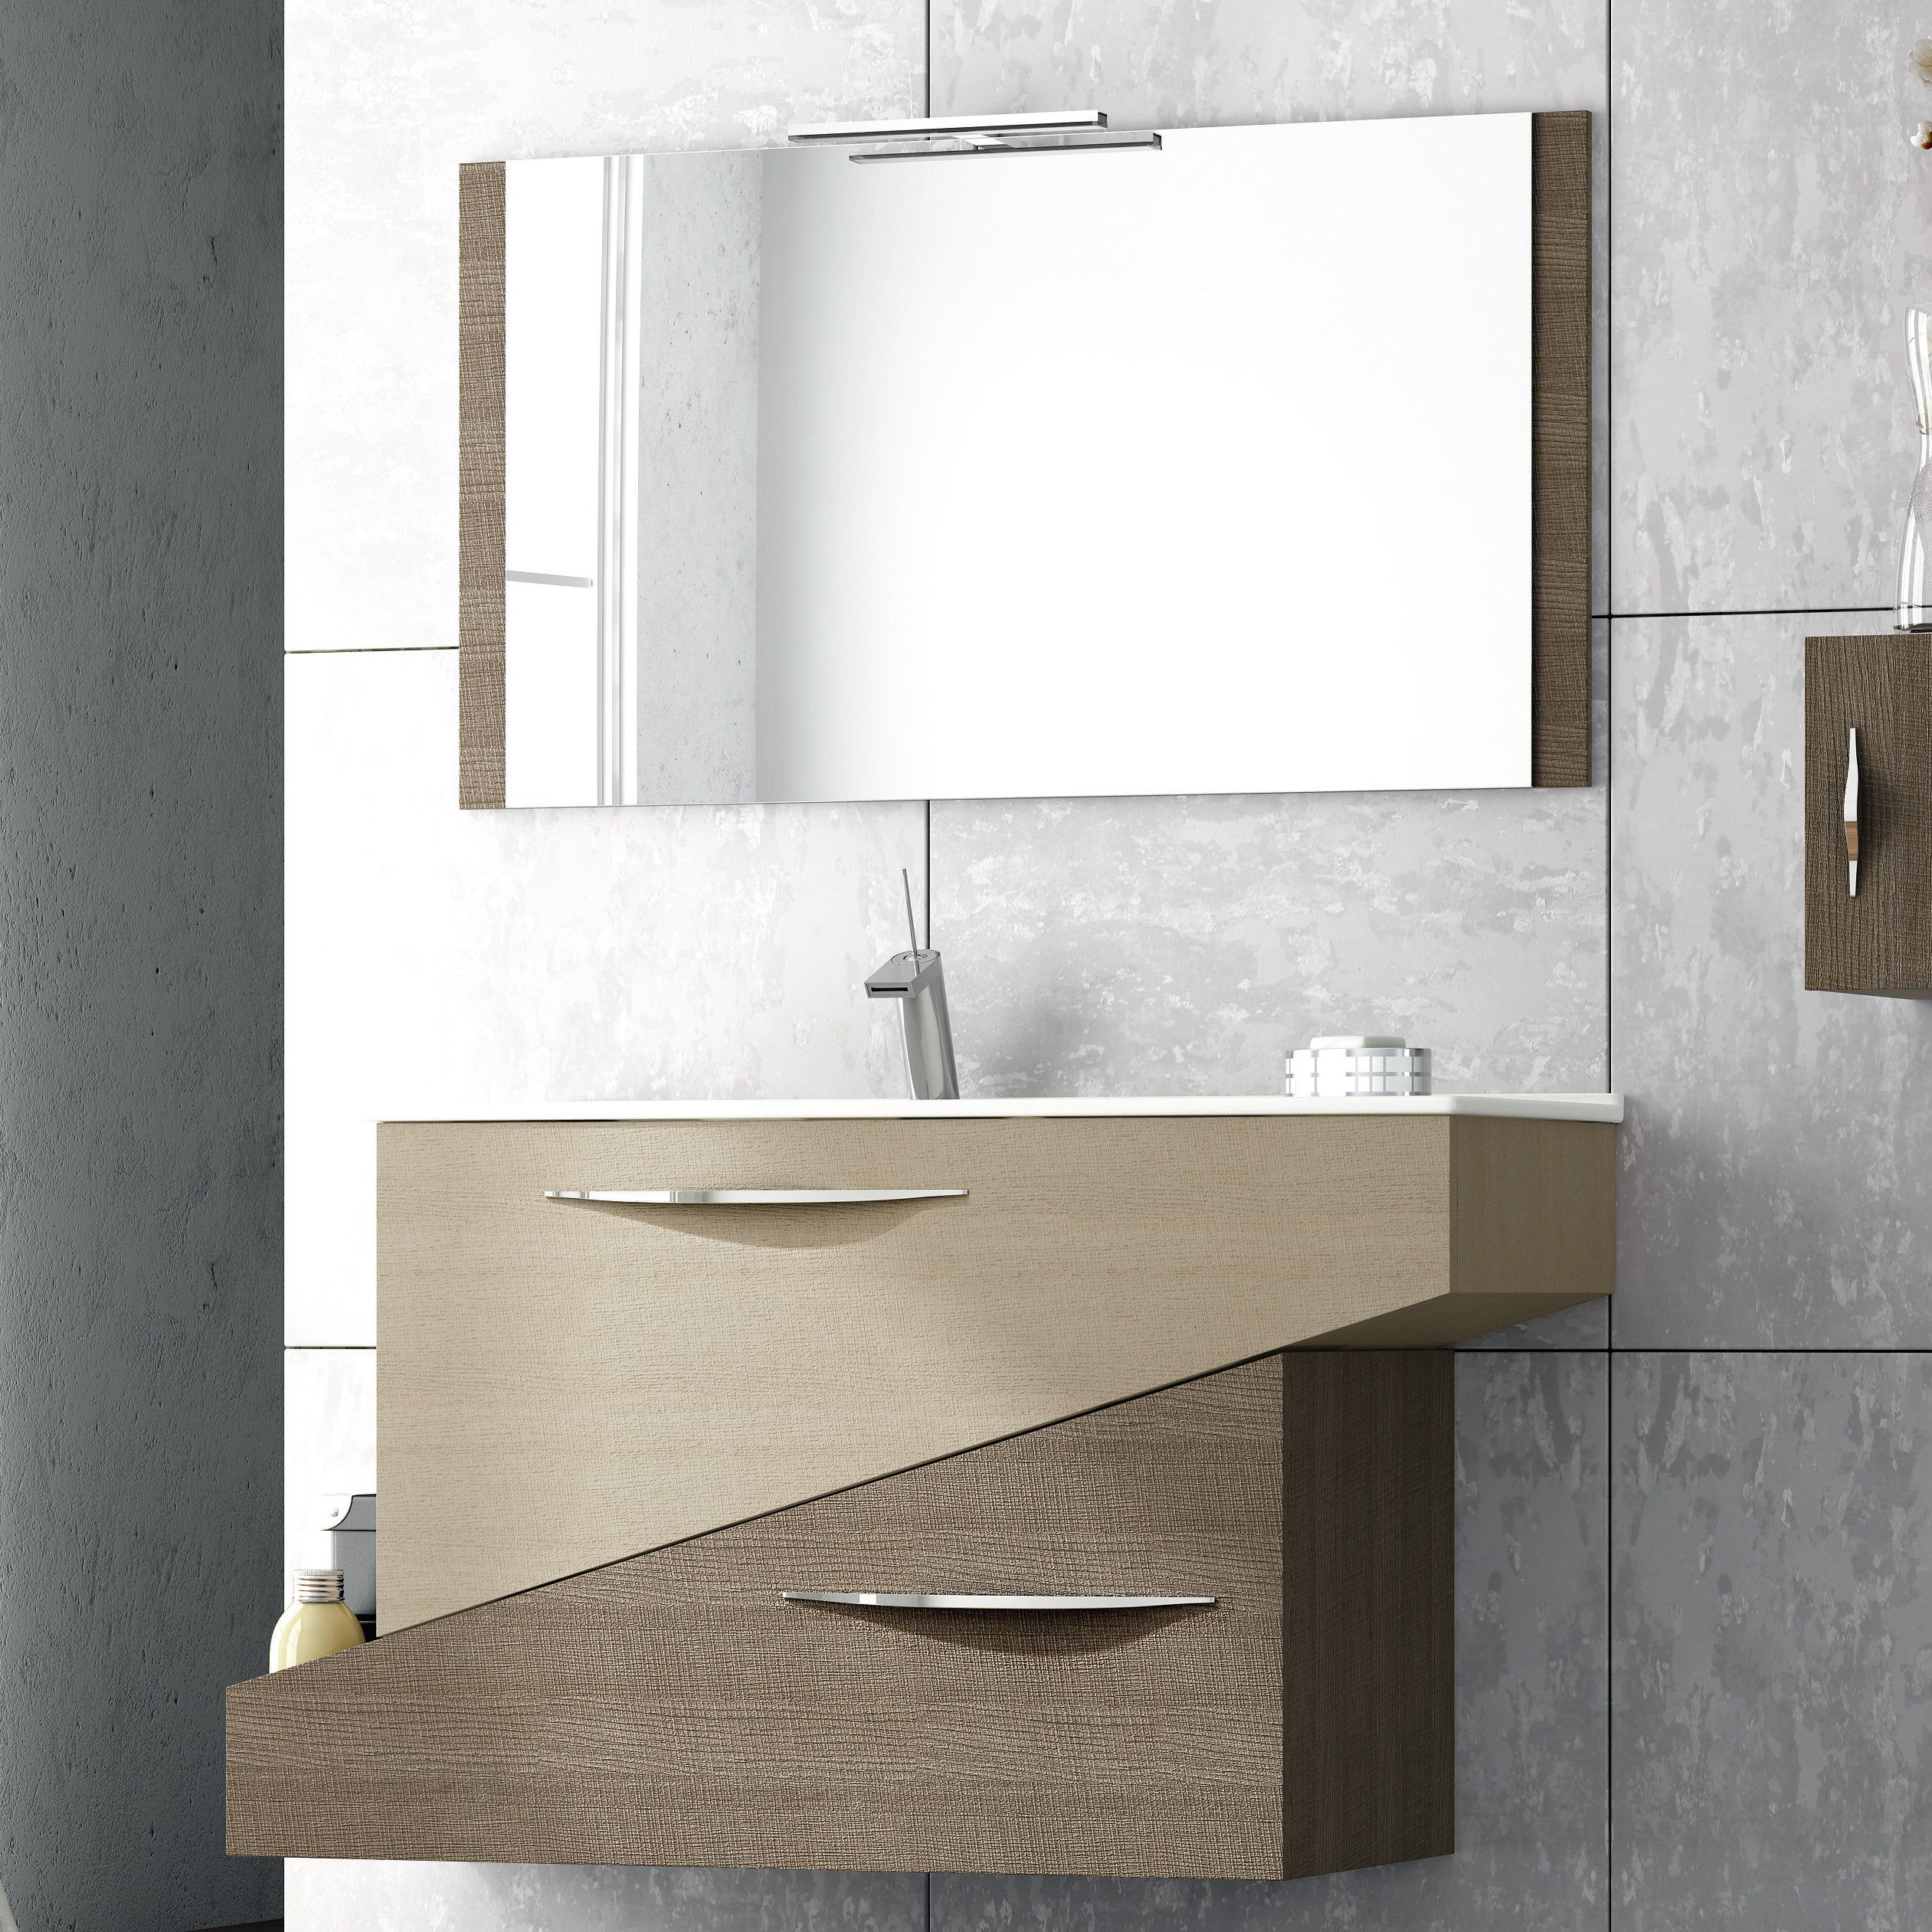 Abella 38 Inch Modern Single Sink Bathroom Vanity Set With Mirror Waschbeckenunterschrank Badezimmer Waschtische Badezimmer